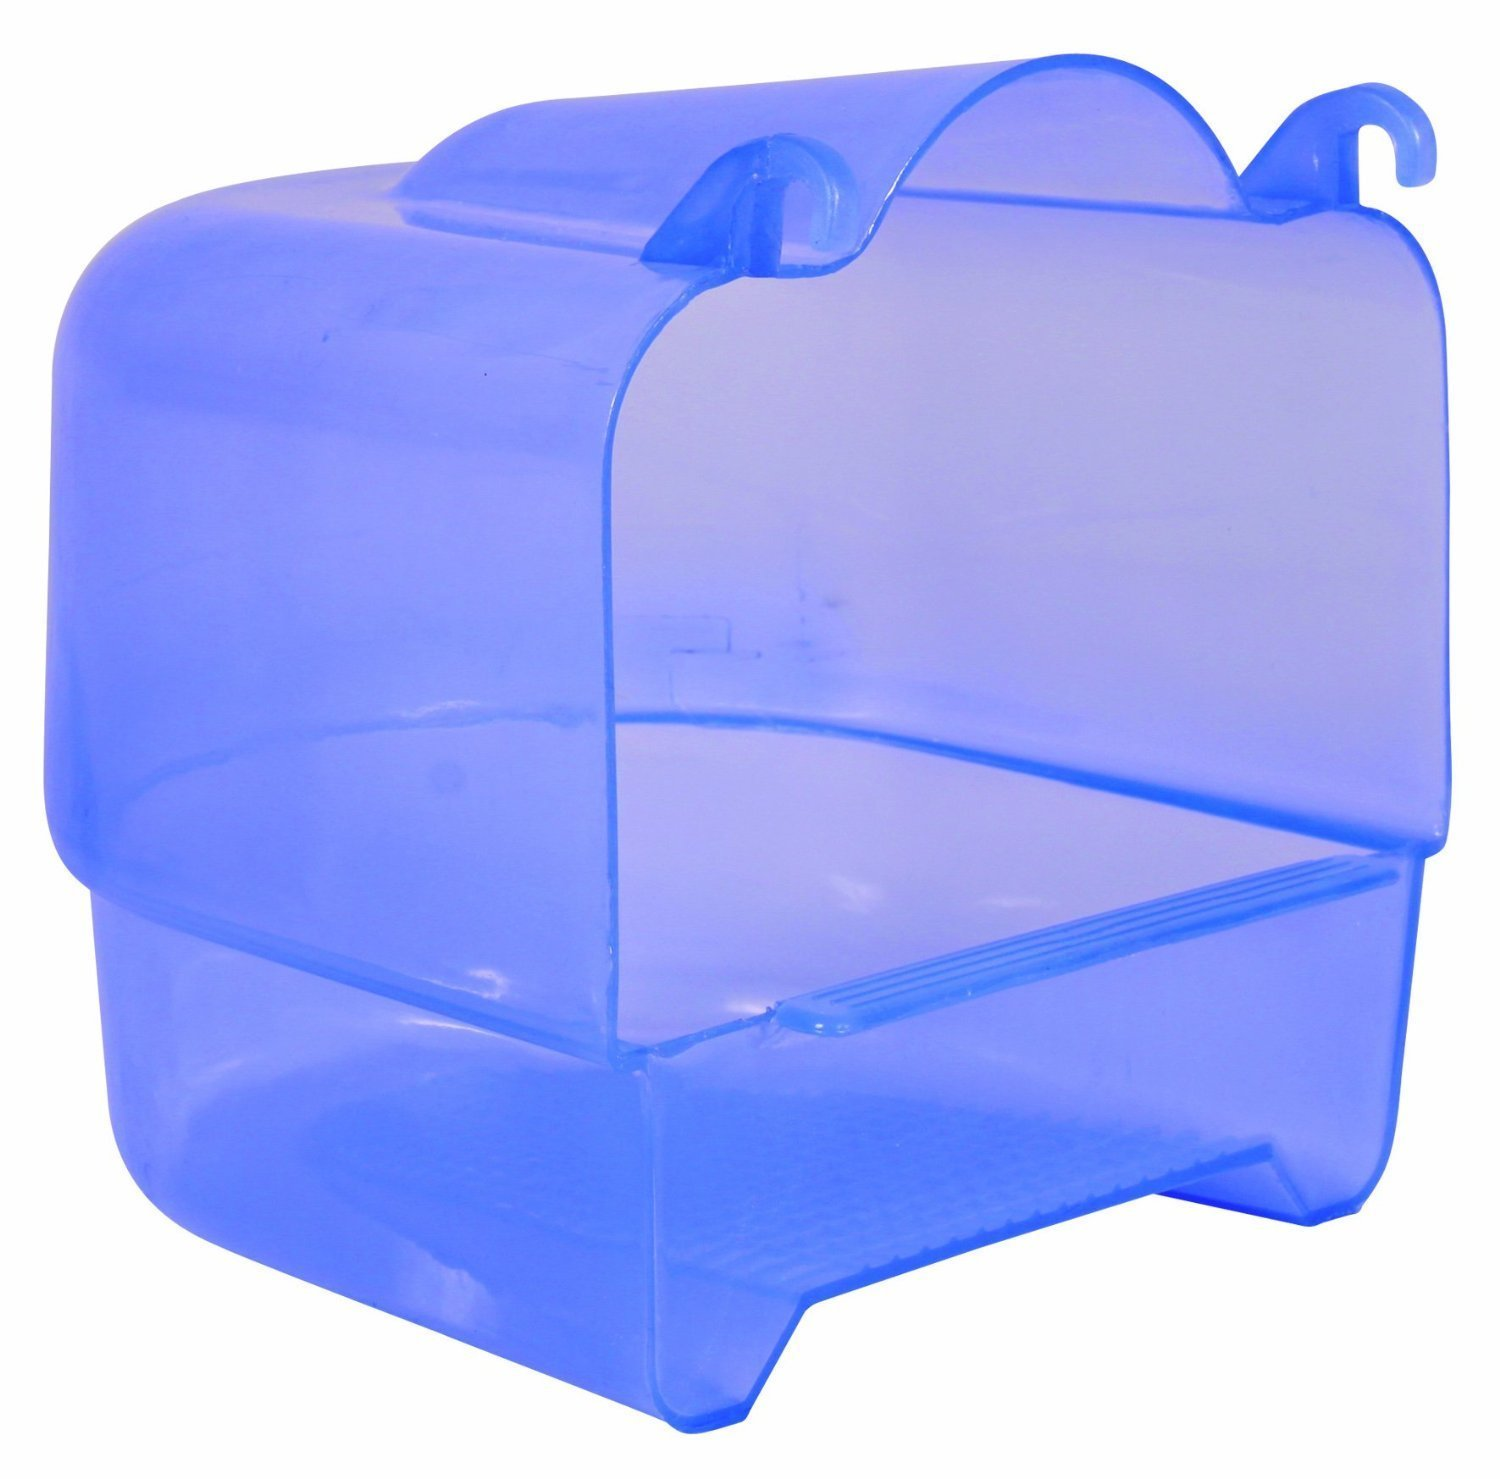 Trixie Transparent Plastic Bird Bath for Parakeets, Canaries, and Finches 54032